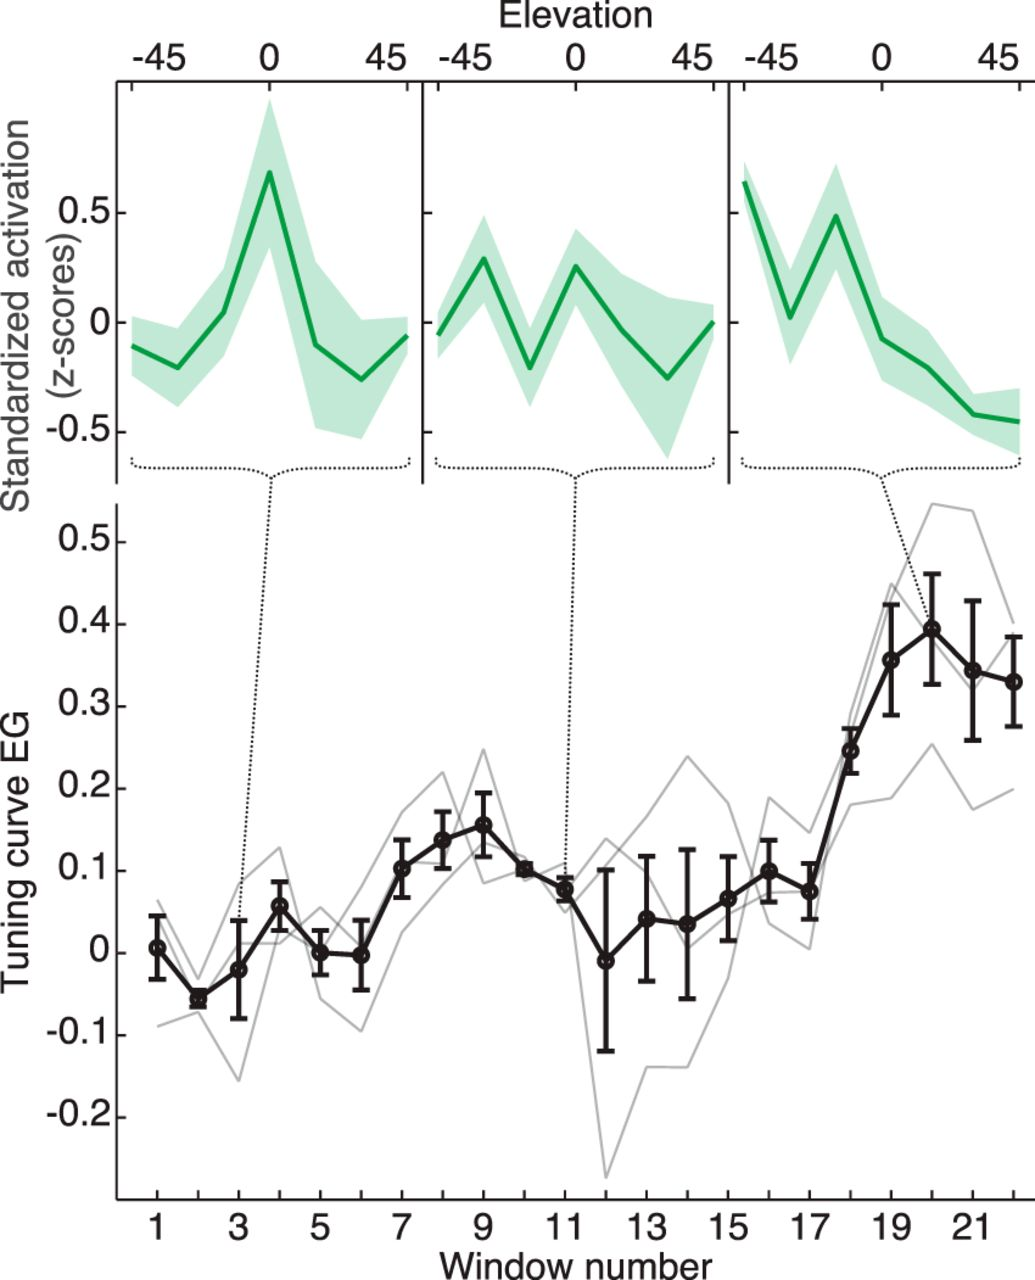 The Encoding Of Sound Source Elevation In Human Auditory Cortex